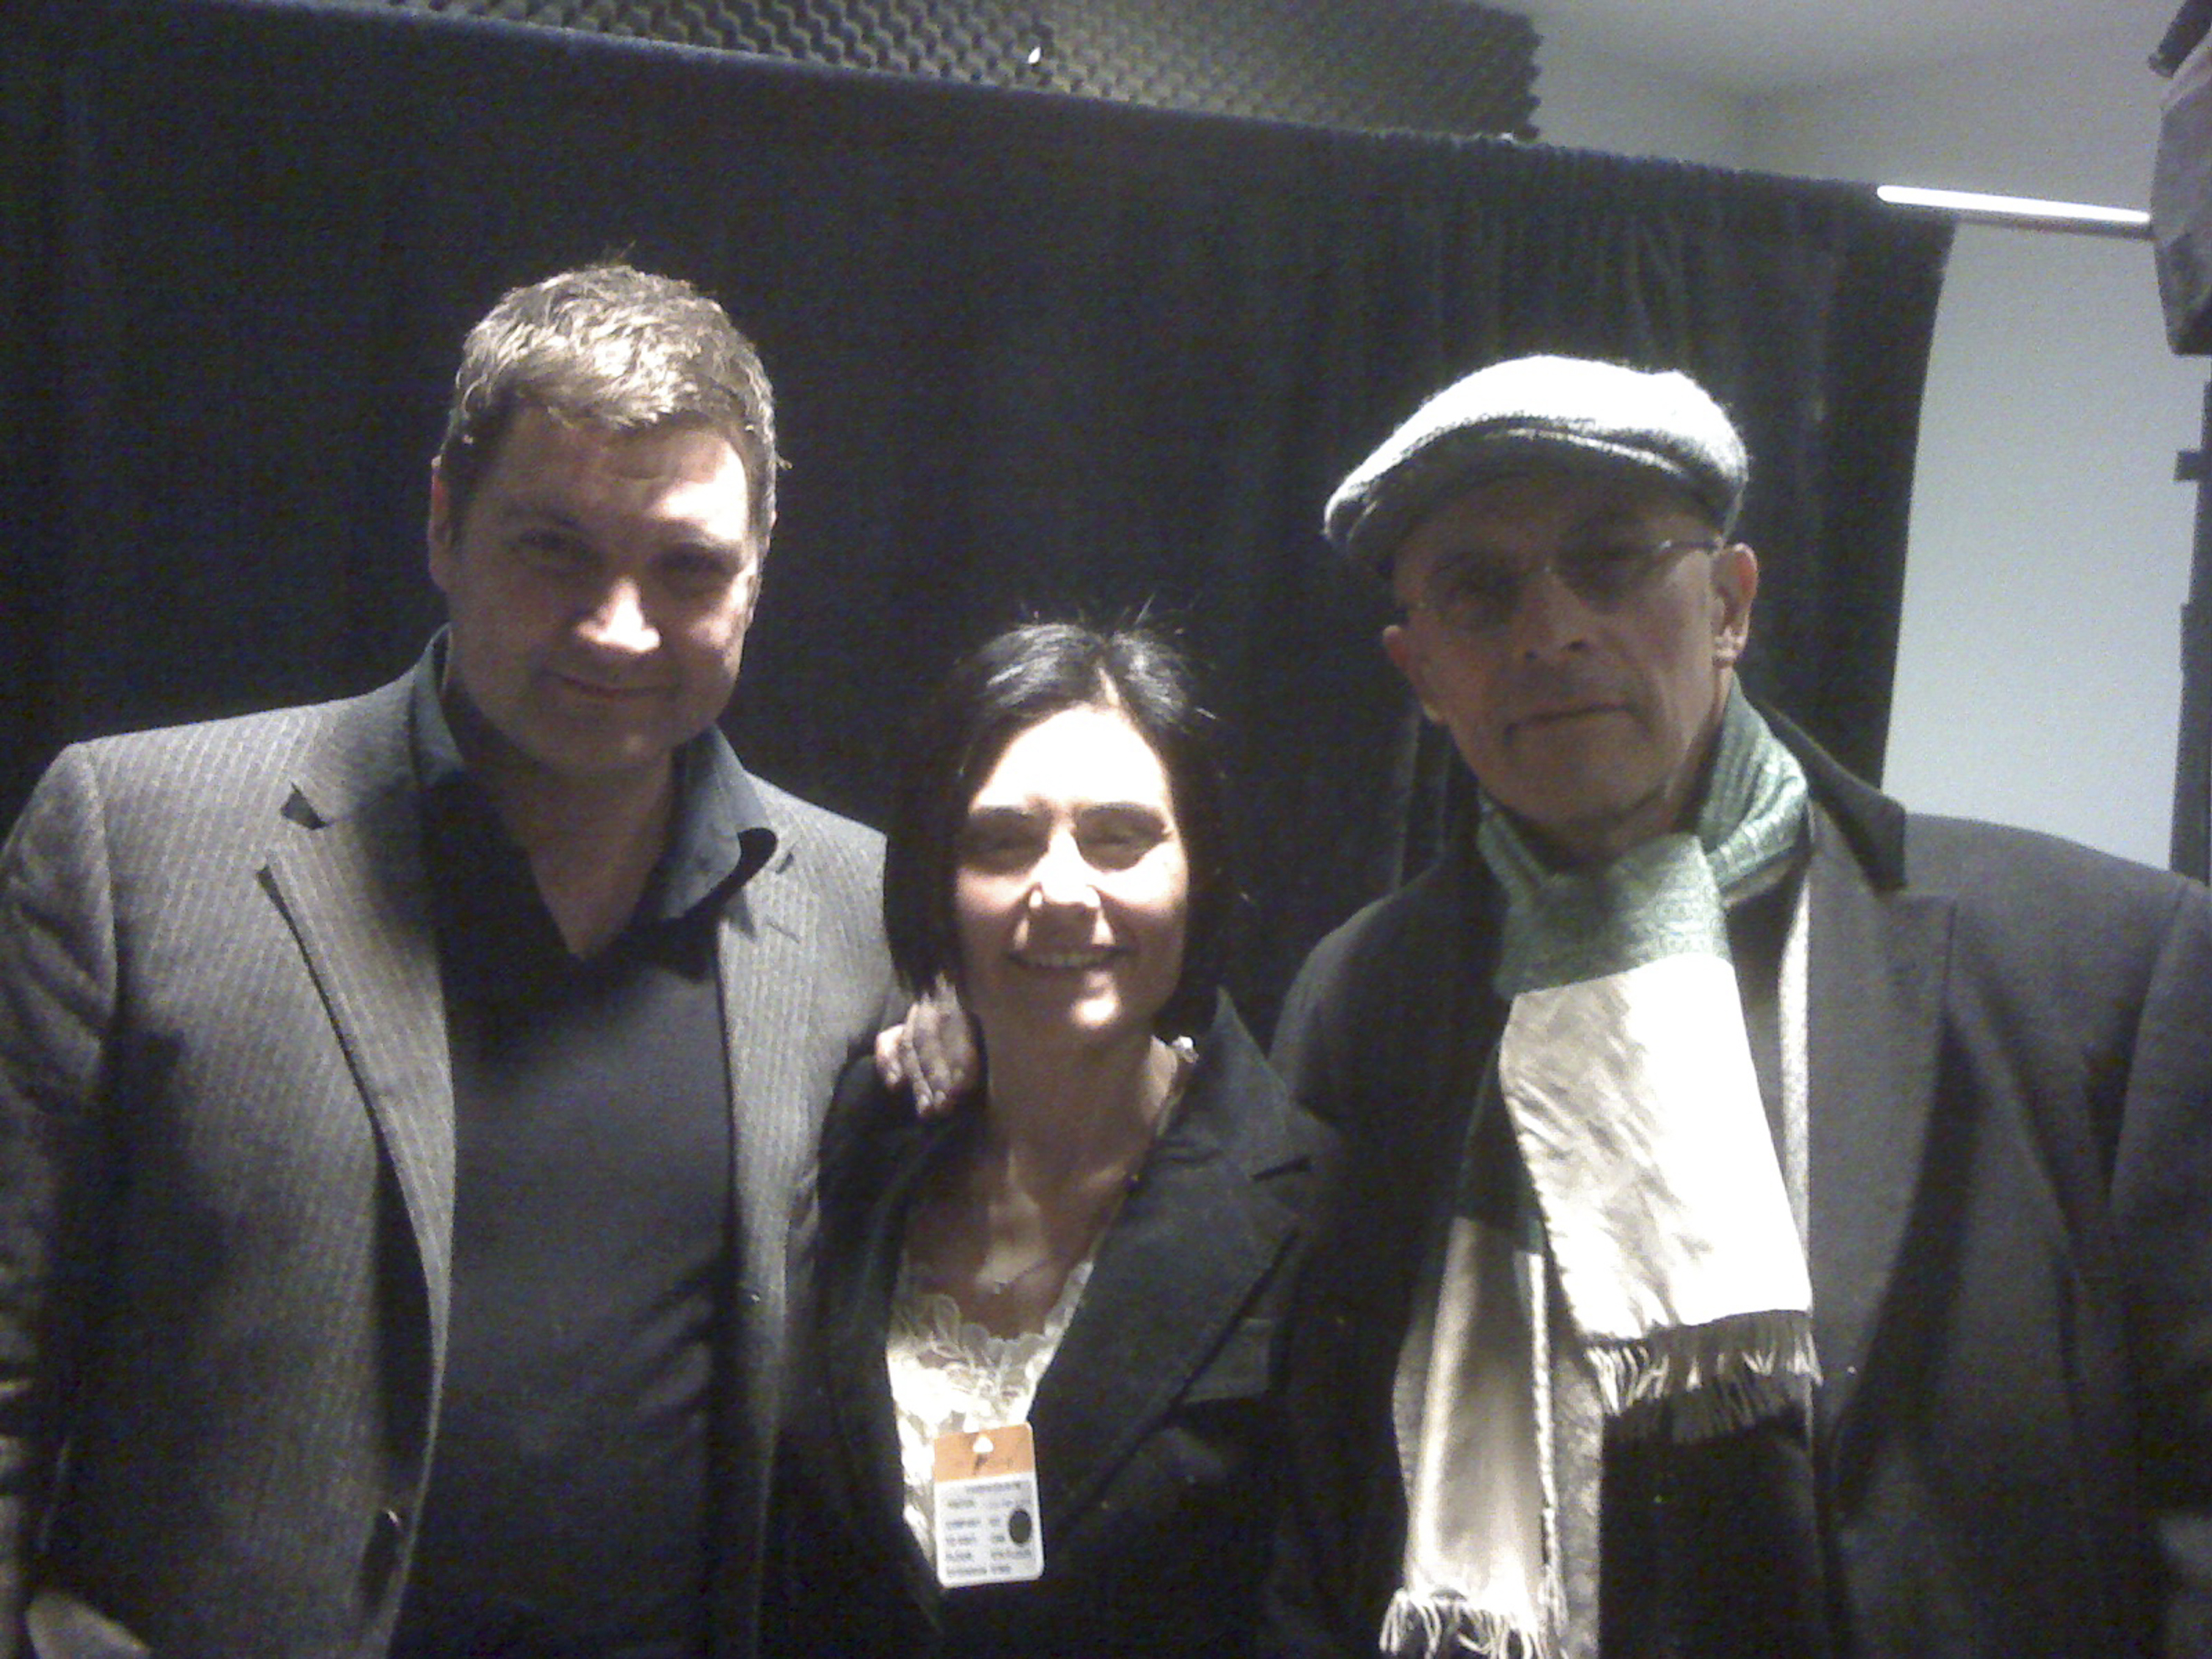 With Jaques Audiard and his producer